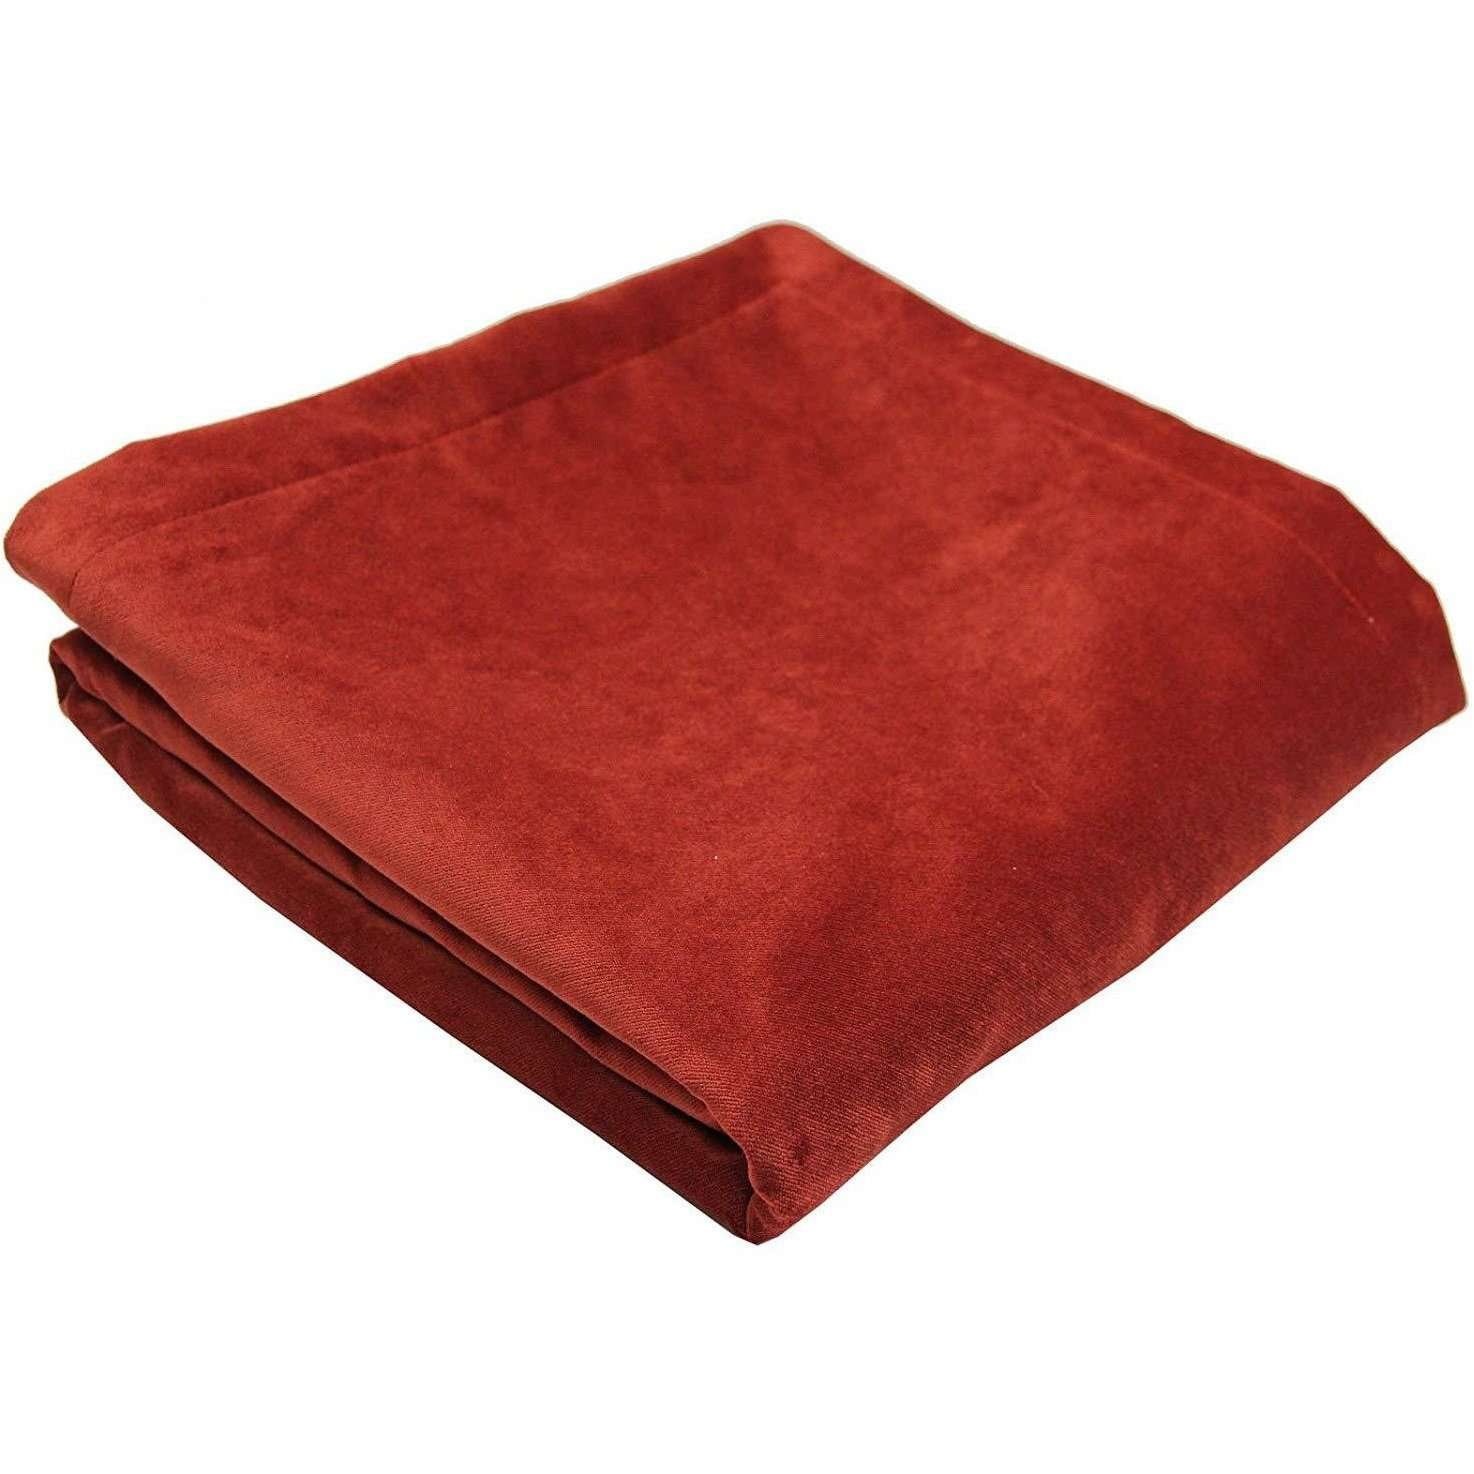 McAlister Textiles Matt Rust Red Orange Velvet Throw Blankets & Runners Throws and Runners Regular (130cm x 200cm)